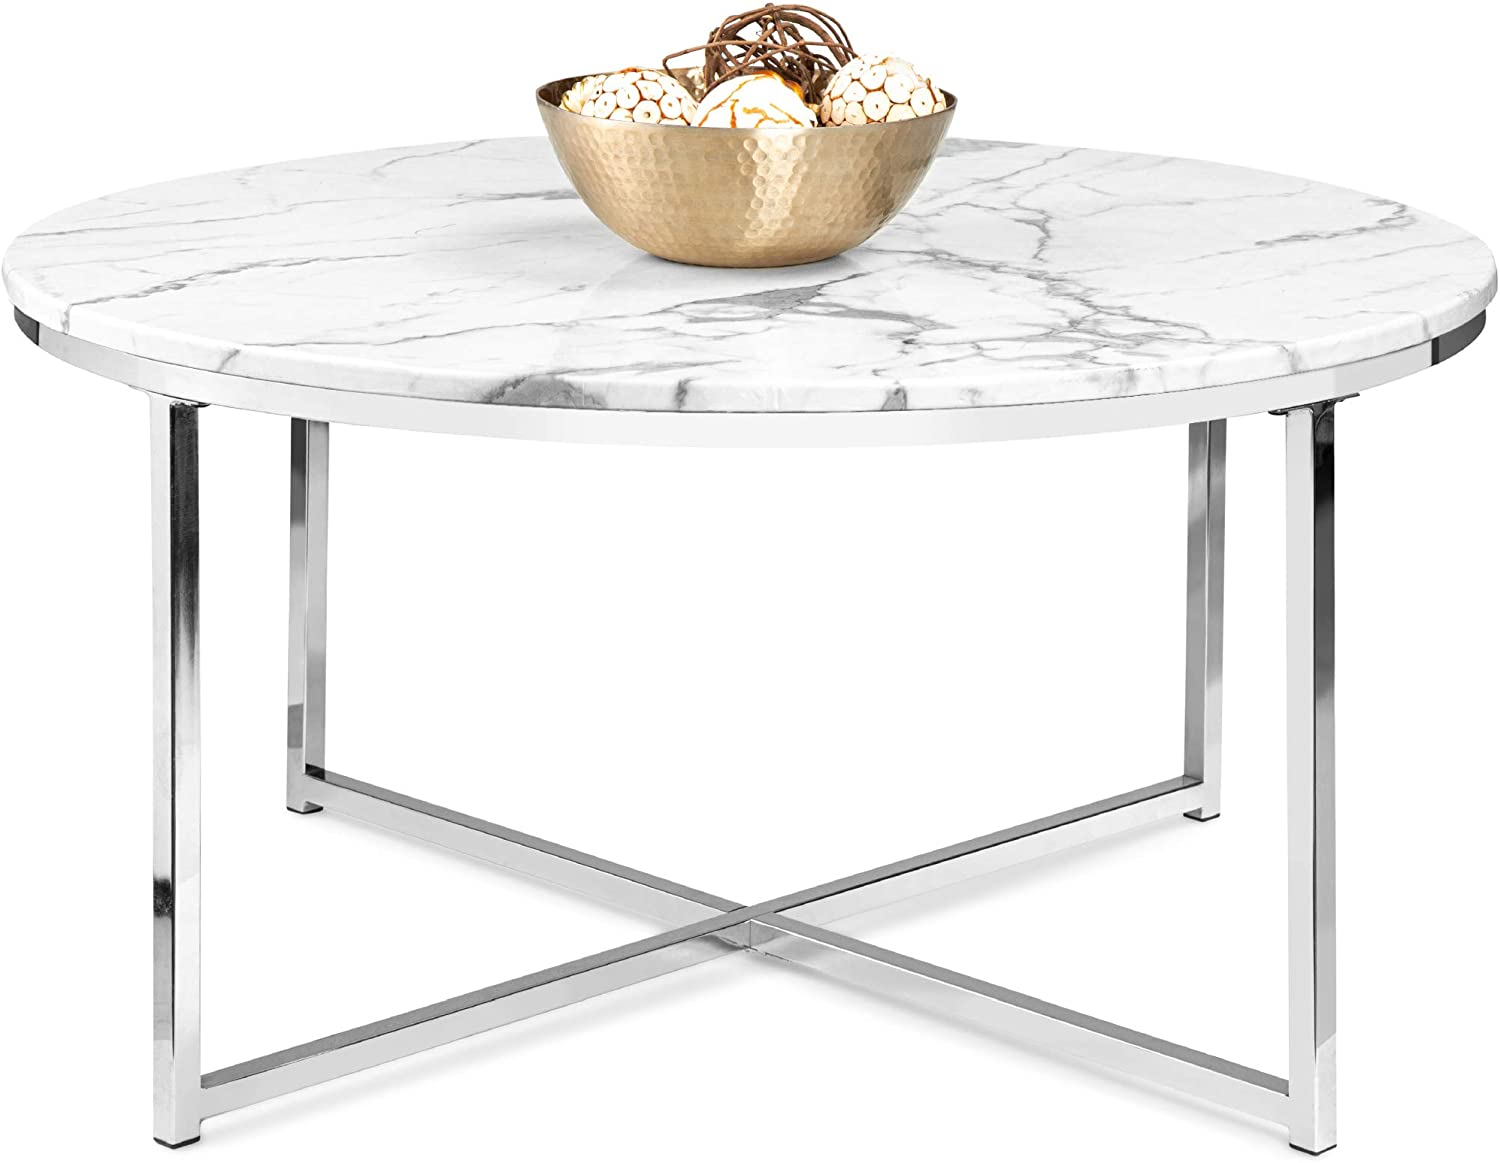 Best Choice Products 36in Faux Max 68% OFF Marble C Round Accent Modern 100% quality warranty! Side